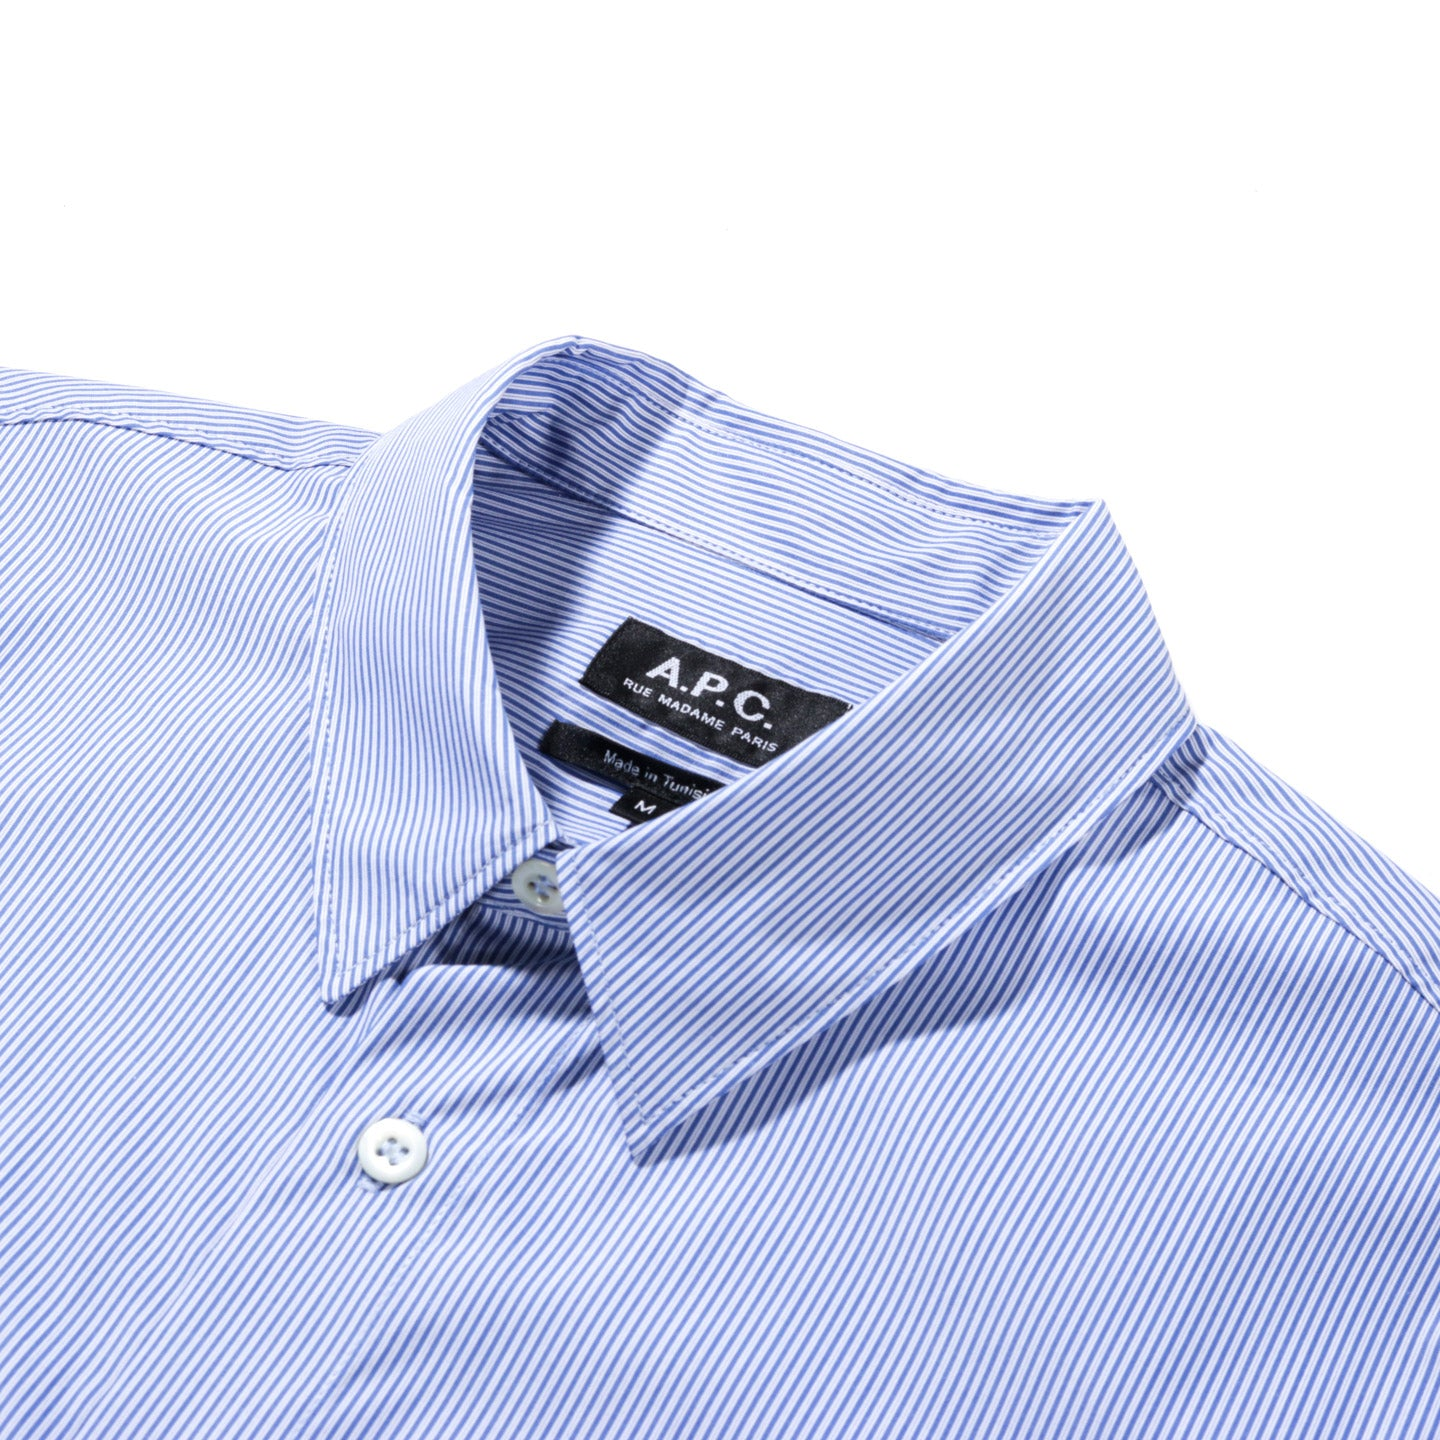 A.P.C. HECTOR SHIRT BLUE STRIPE